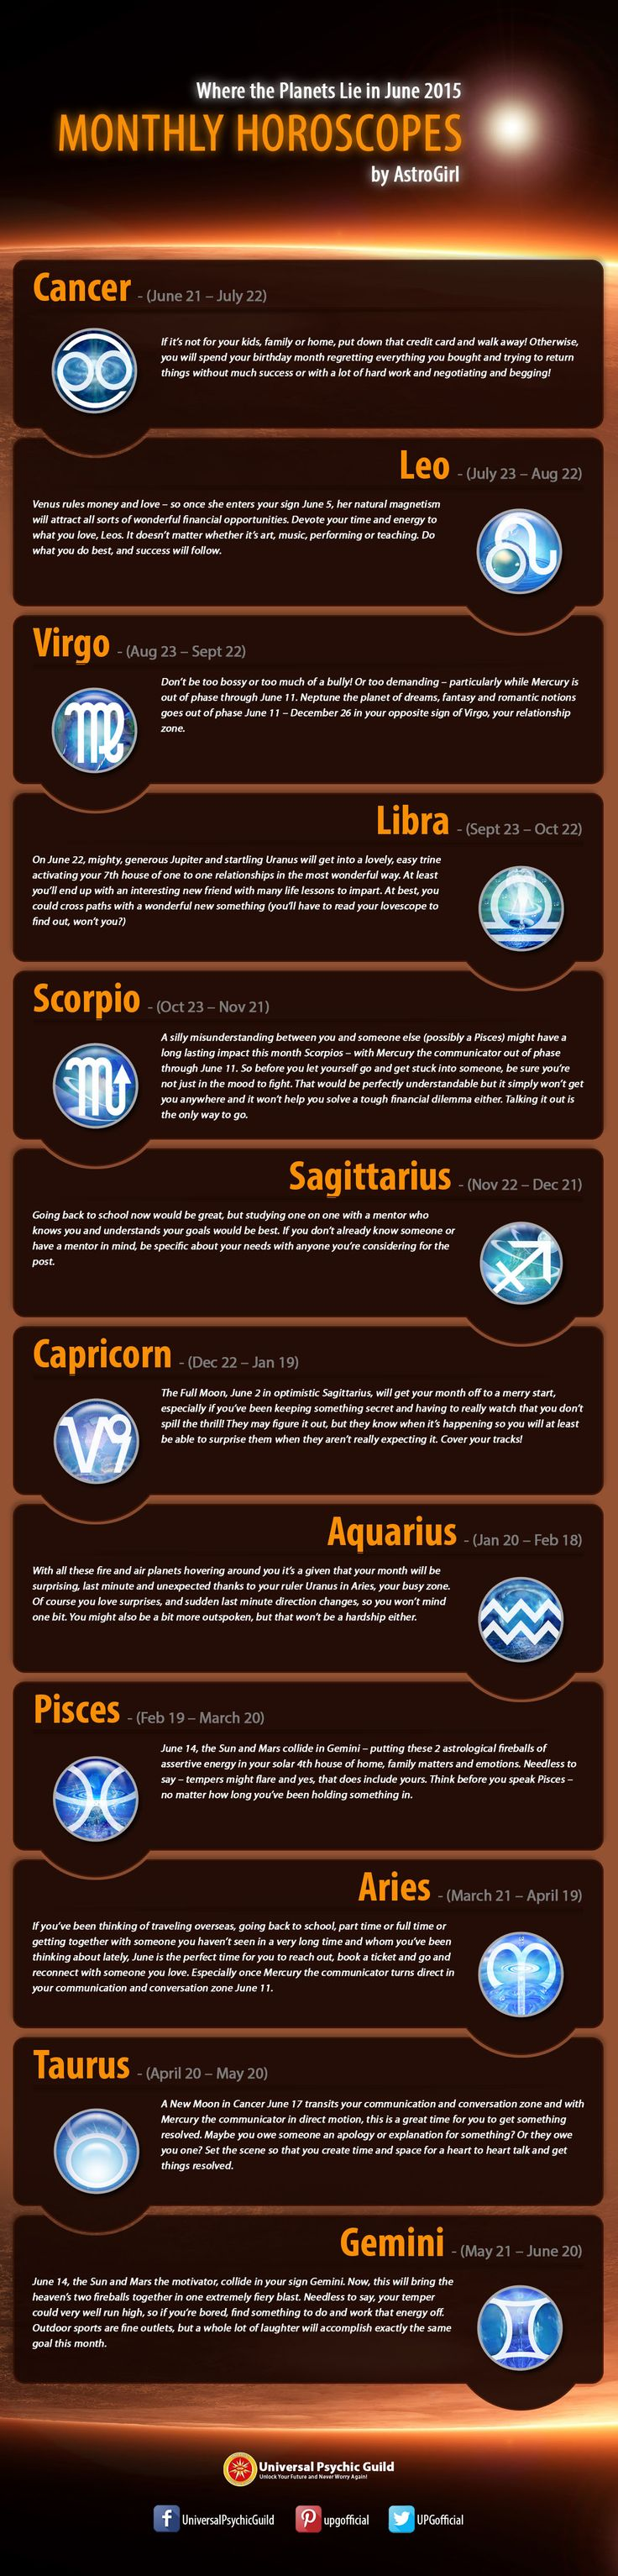 #Astrology Updates: Monthly #Horoscopes for 12 #ZodiacSigns for JUNE 2015